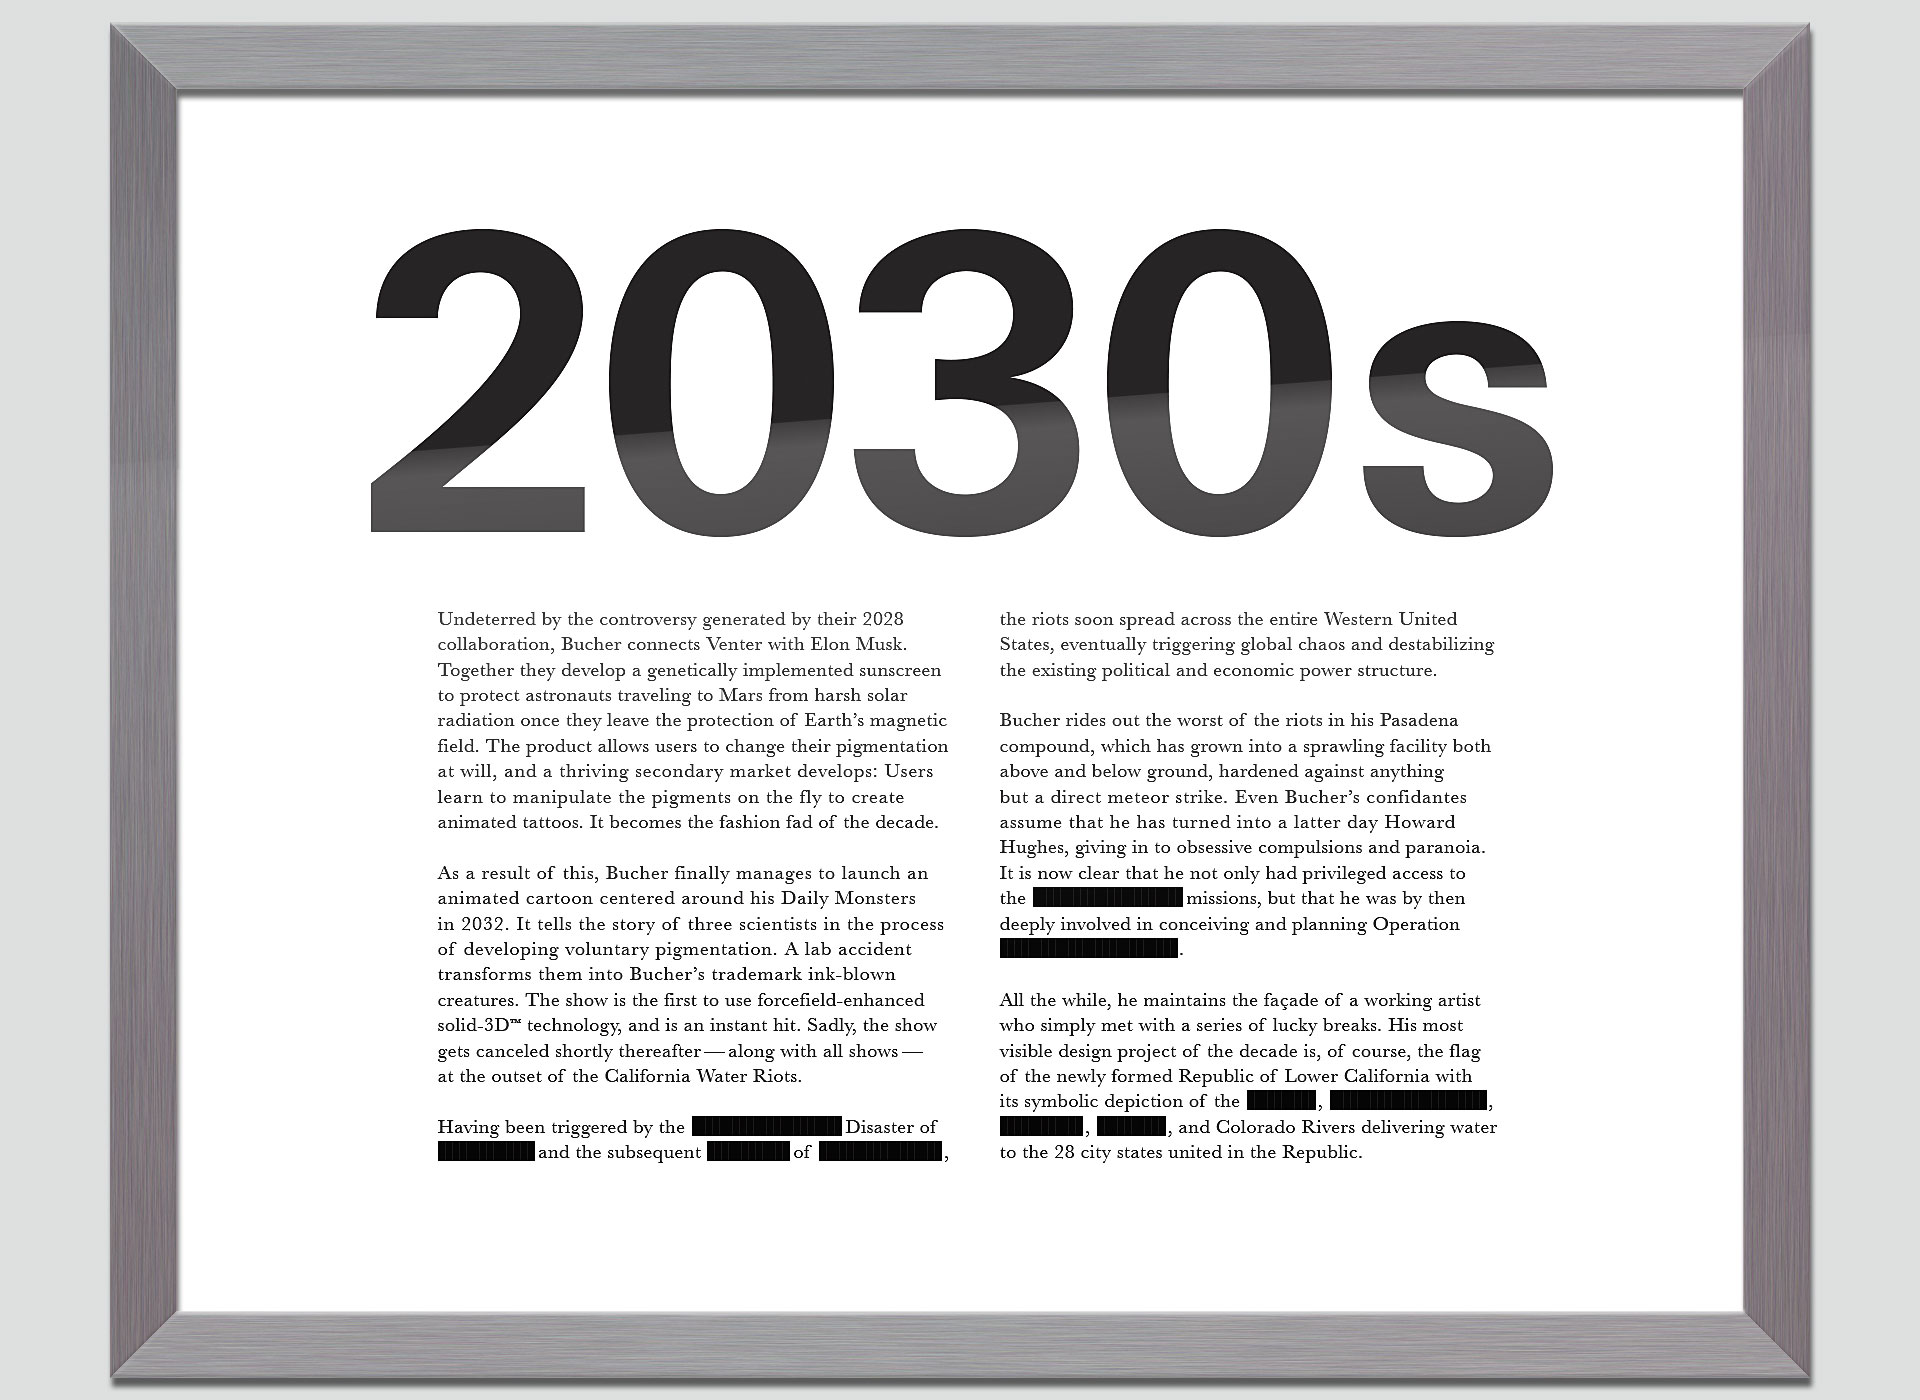 everything-decades-2030@2x.jpg